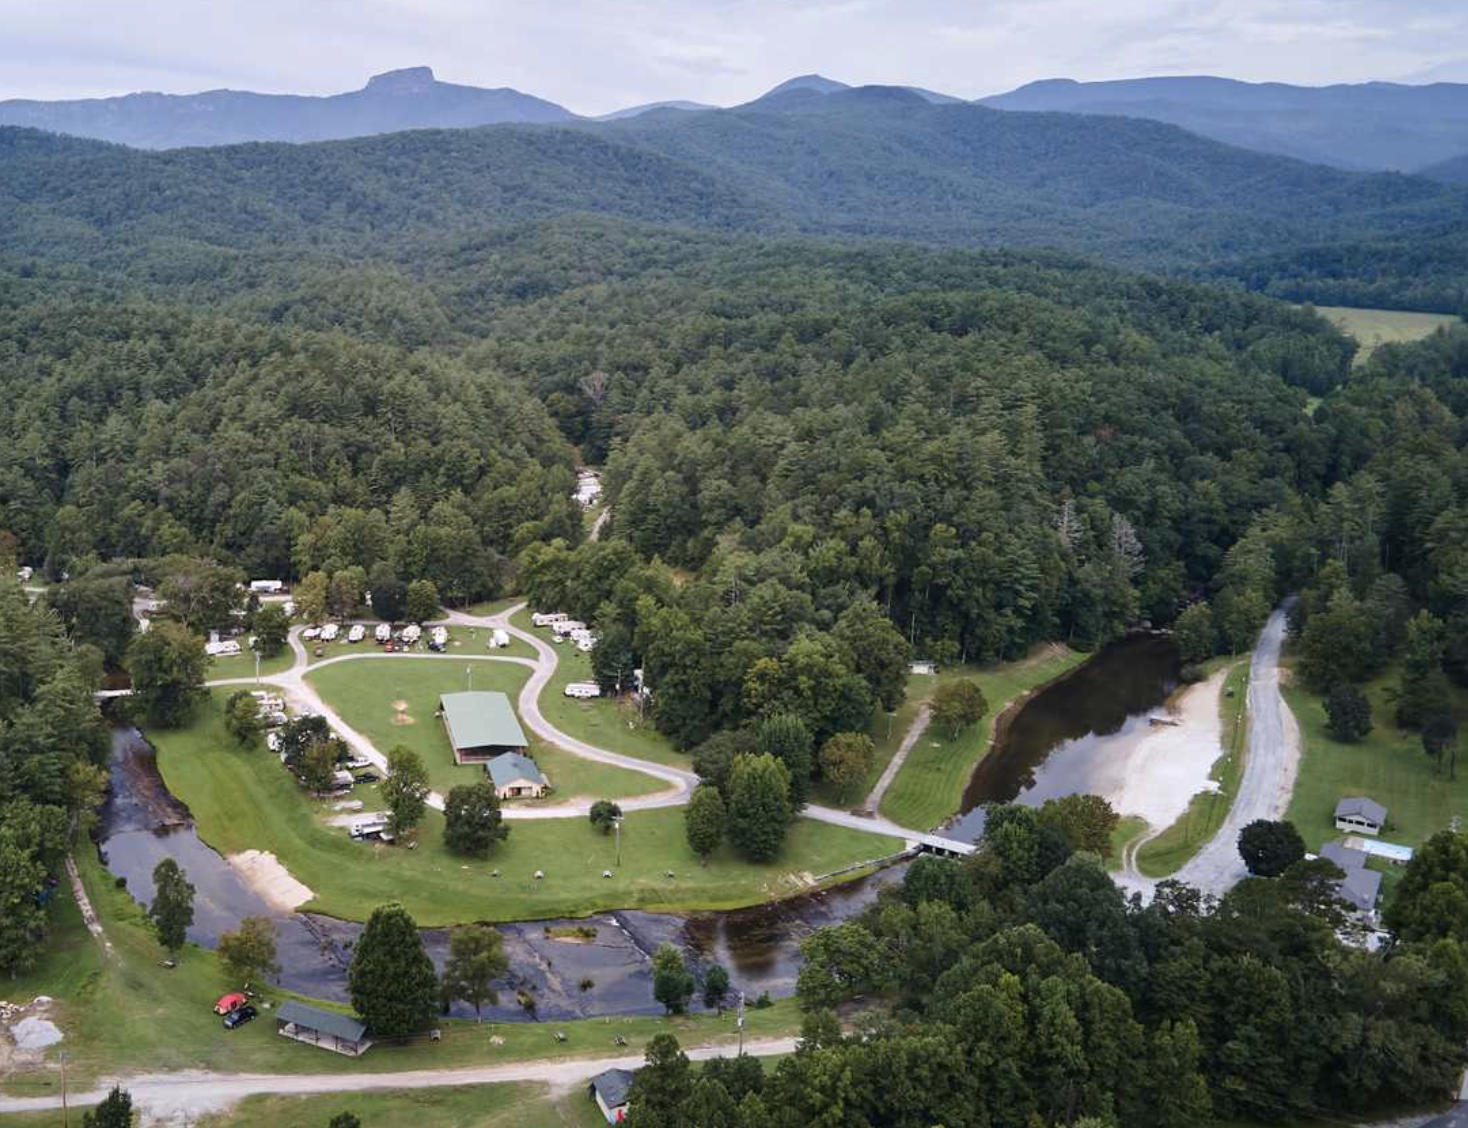 Campground at the base of mountains in Western North Carolina